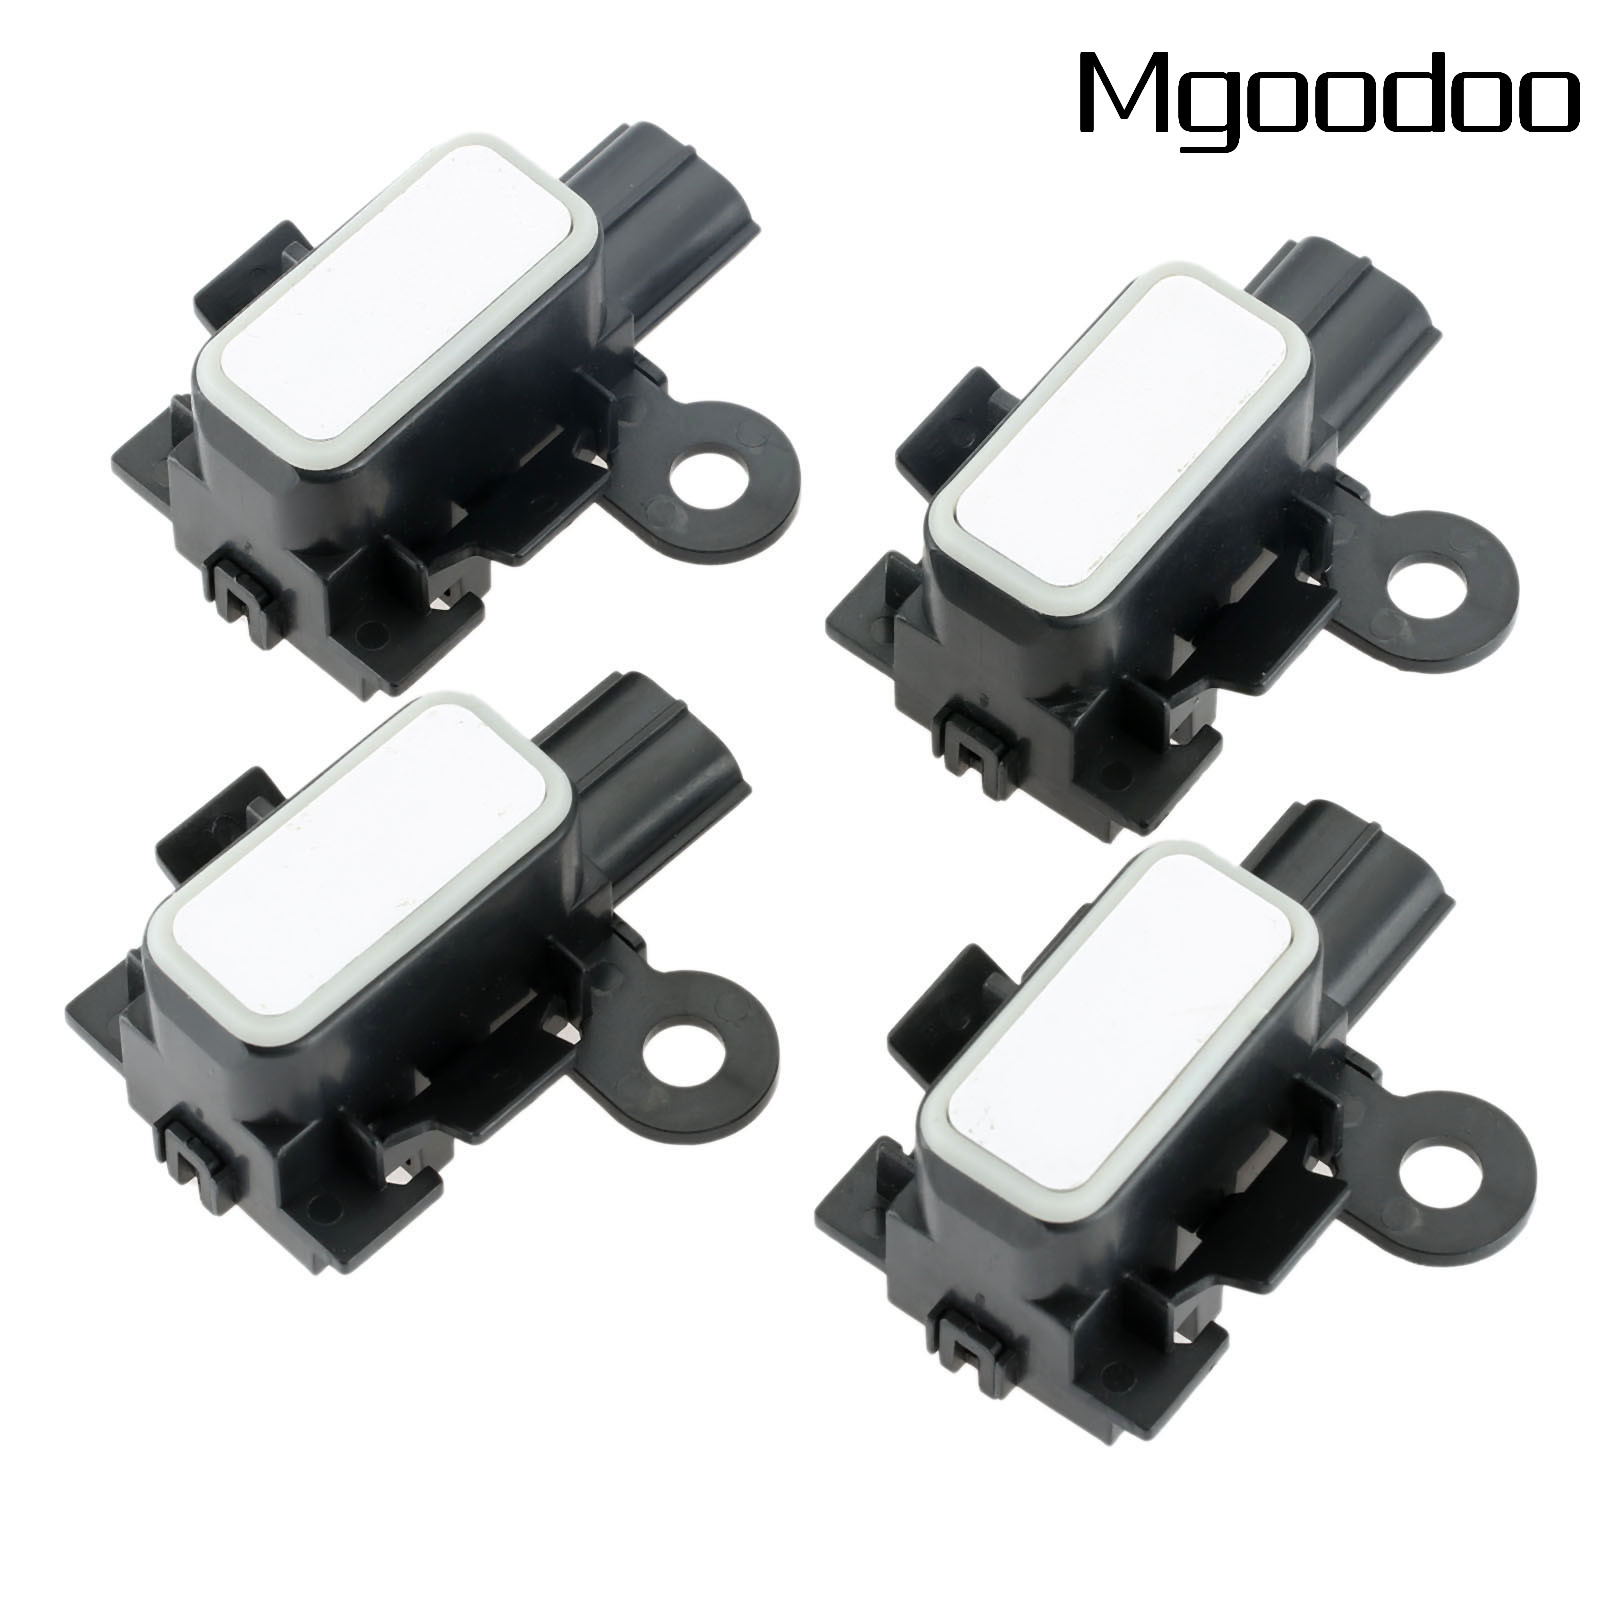 4x PDC Ultrasonic Parking Radar Sensor For Lexus GS300 GS350 GS430 GS450h GS460 89341-44150-B2 89341-44150 Parktronic Sensor NEW 4 pcs auto parts new original ultrasonic parking sensor 89341 76010 c0 89341 76010 8934176010 for lexus gs450 hybrid